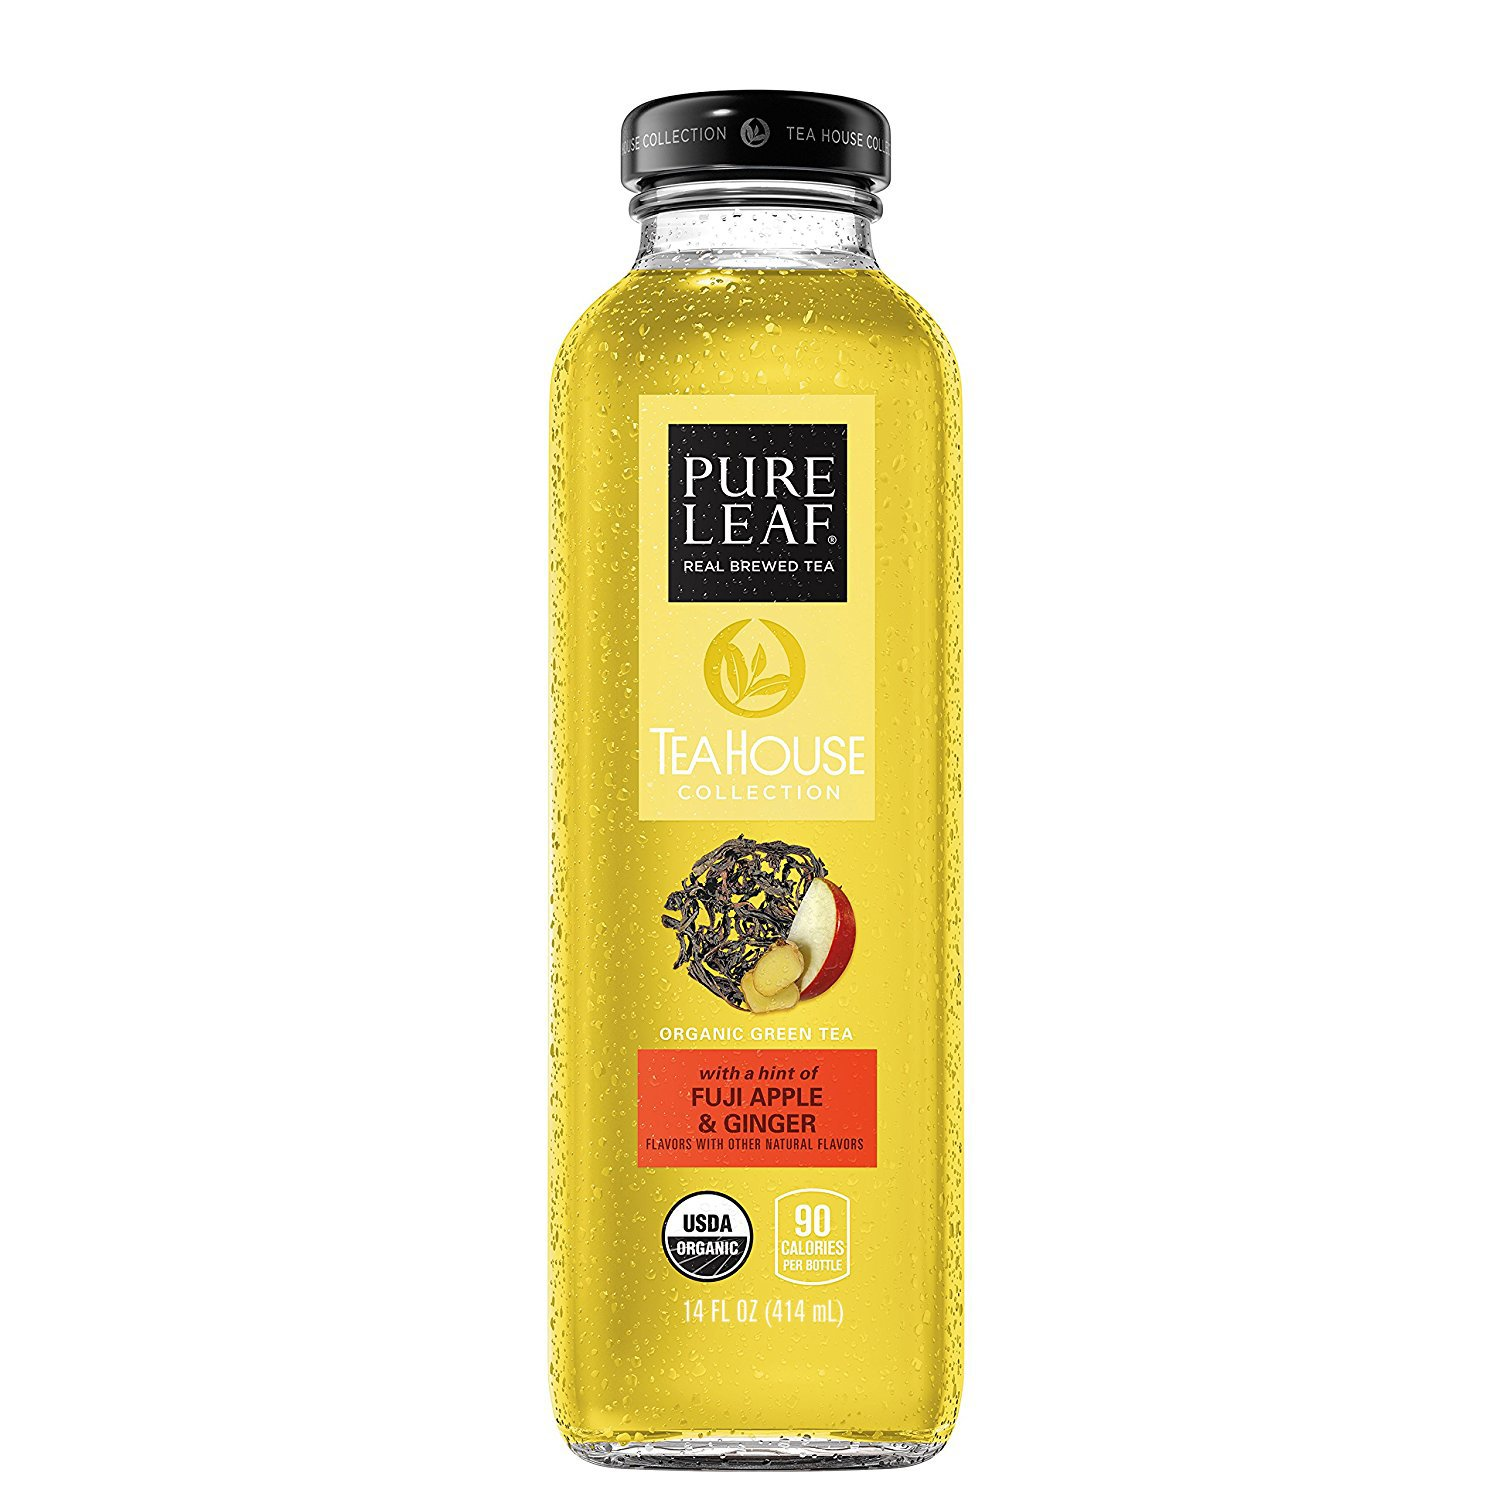 Pure Leaf Tea House Collection, Organic Iced Tea, Fuji Apple & Ginger, 14 Ounce Bottles, Pack of 8